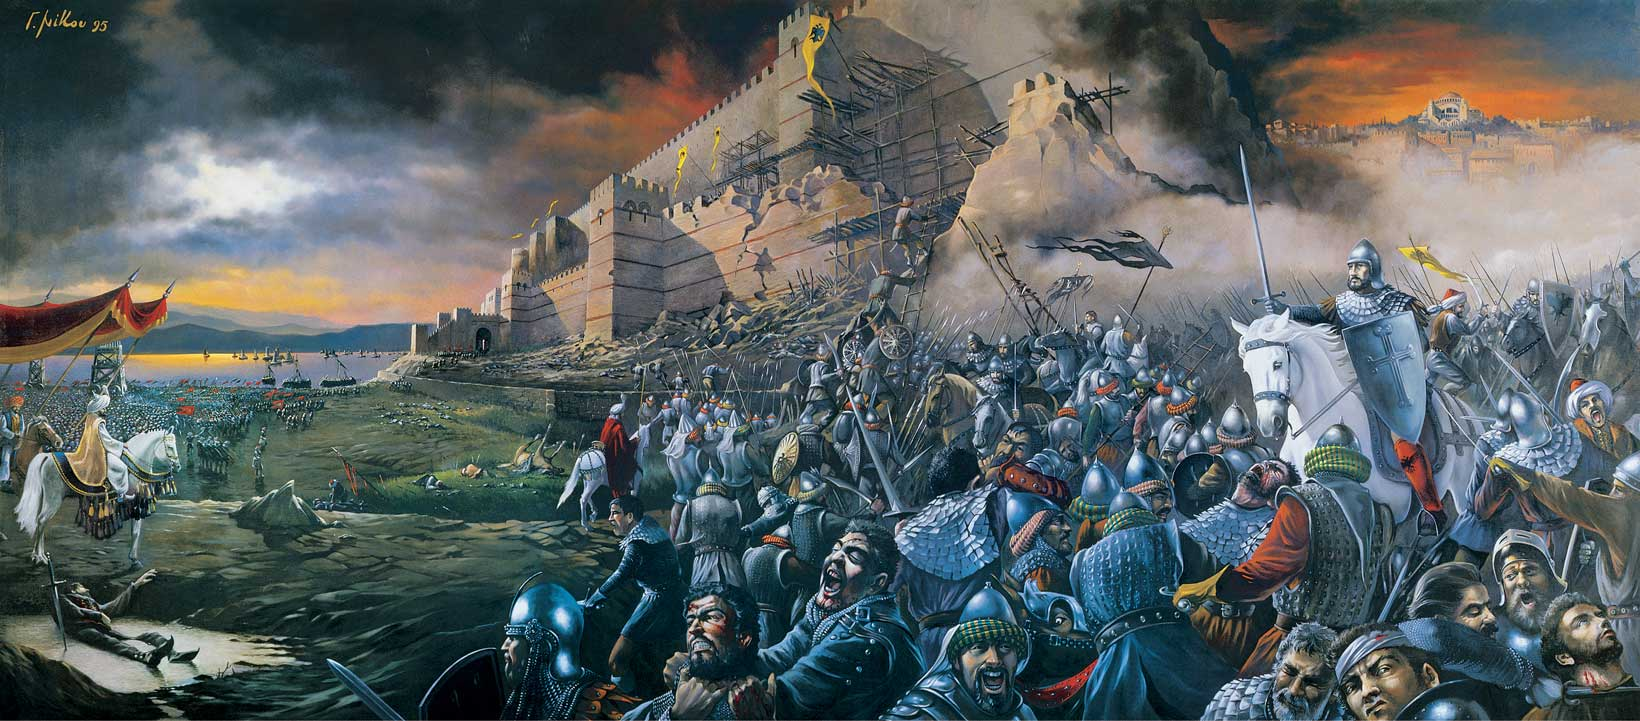 The fall of the city took place on 29 May 1453, the culmination of a 53-day siege which had begun on 6 April 1453.